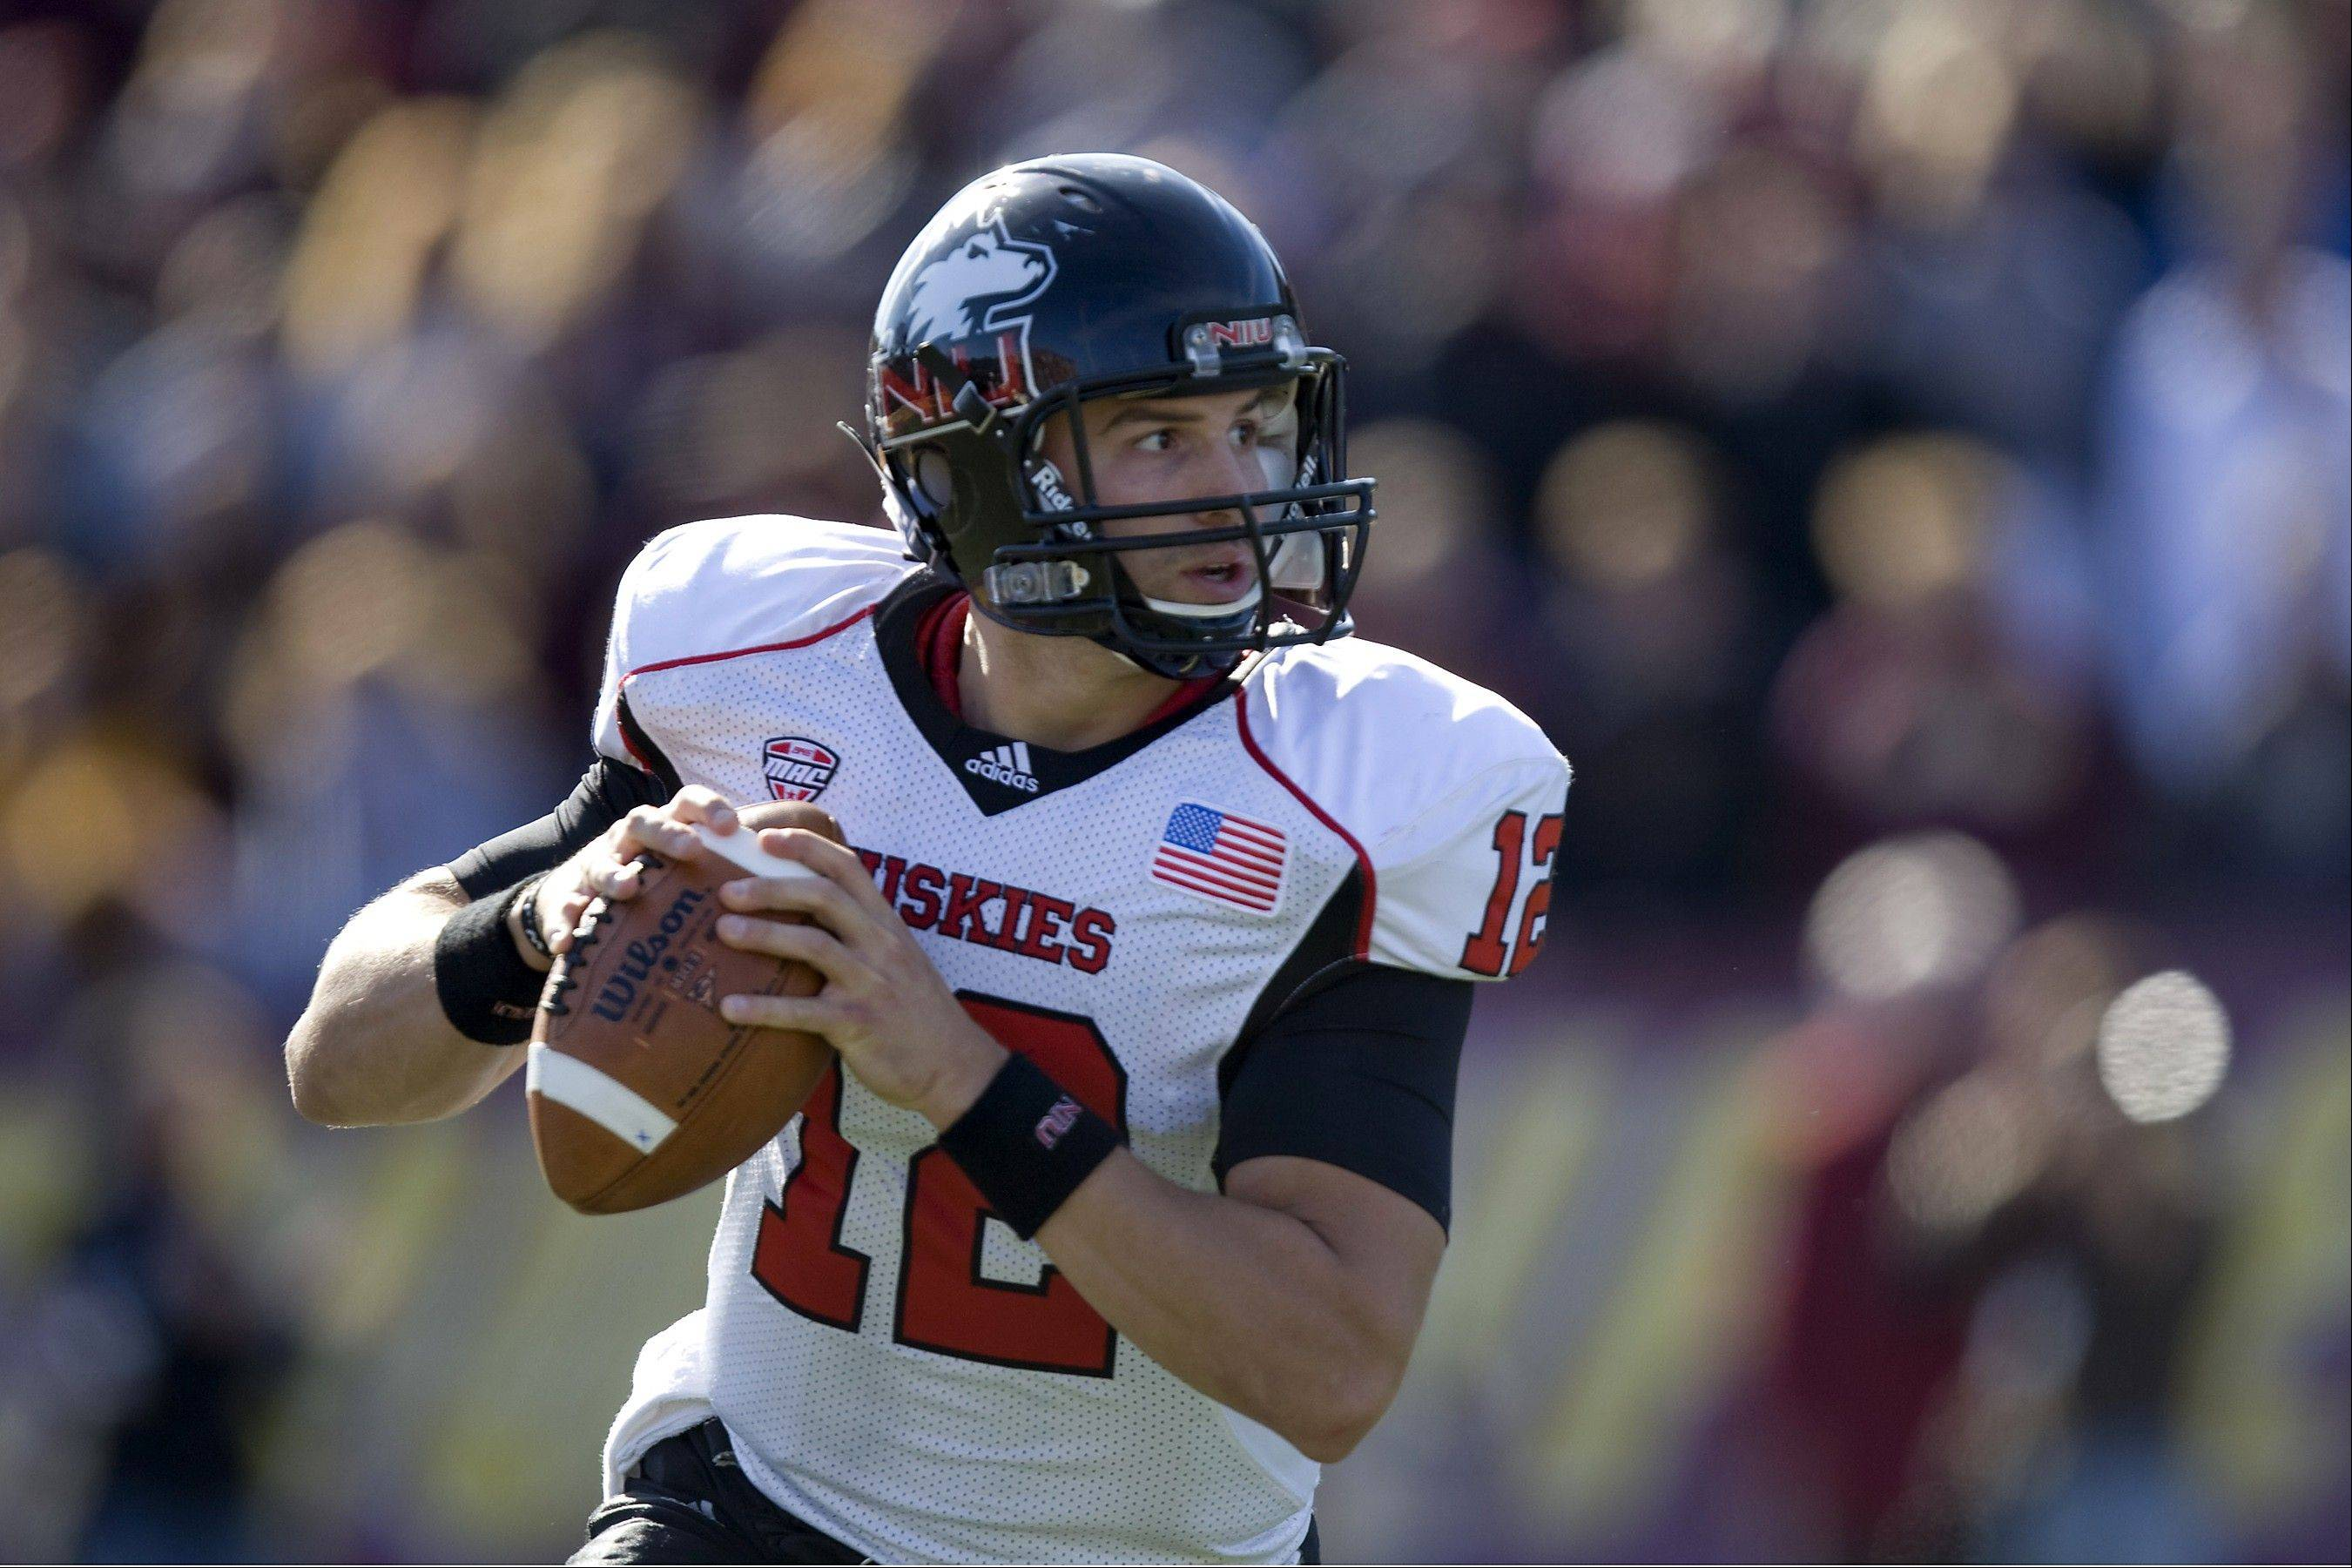 In Chandler Harnish, Northern Illinois has a dual threat with his passing and running skills. The Huskies face another top quarterback on Saturday when Western Michigan's Alex Carder visits DeKalb in a big MAC game for both teams.